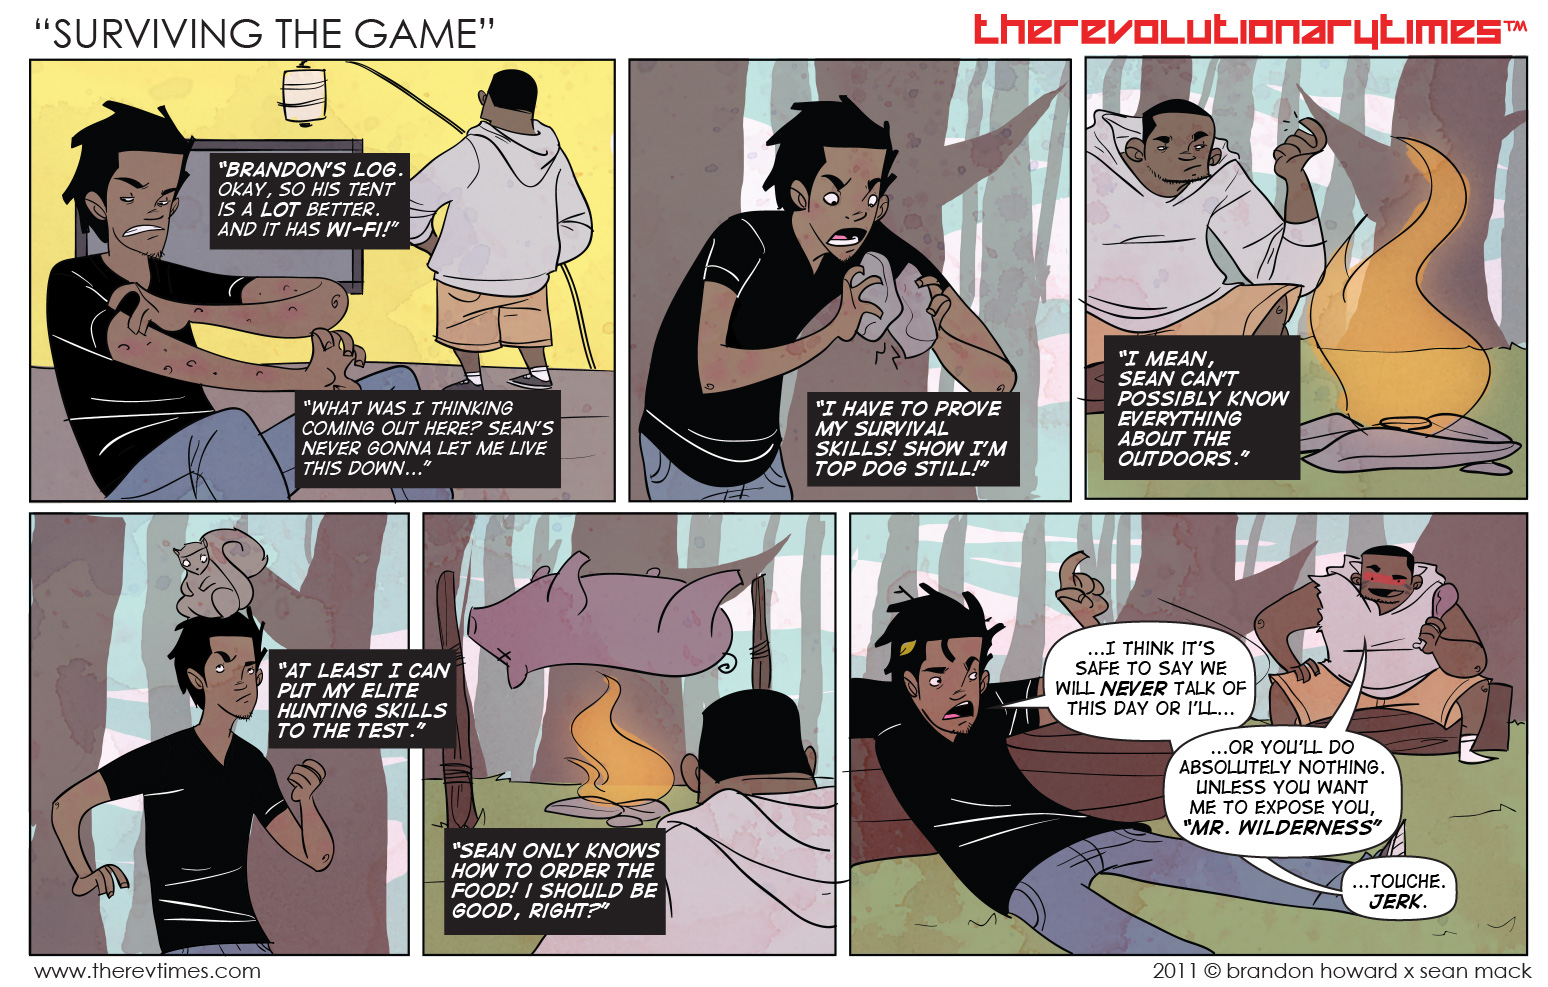 2011-10-04-surviving-the-game-01.jpg